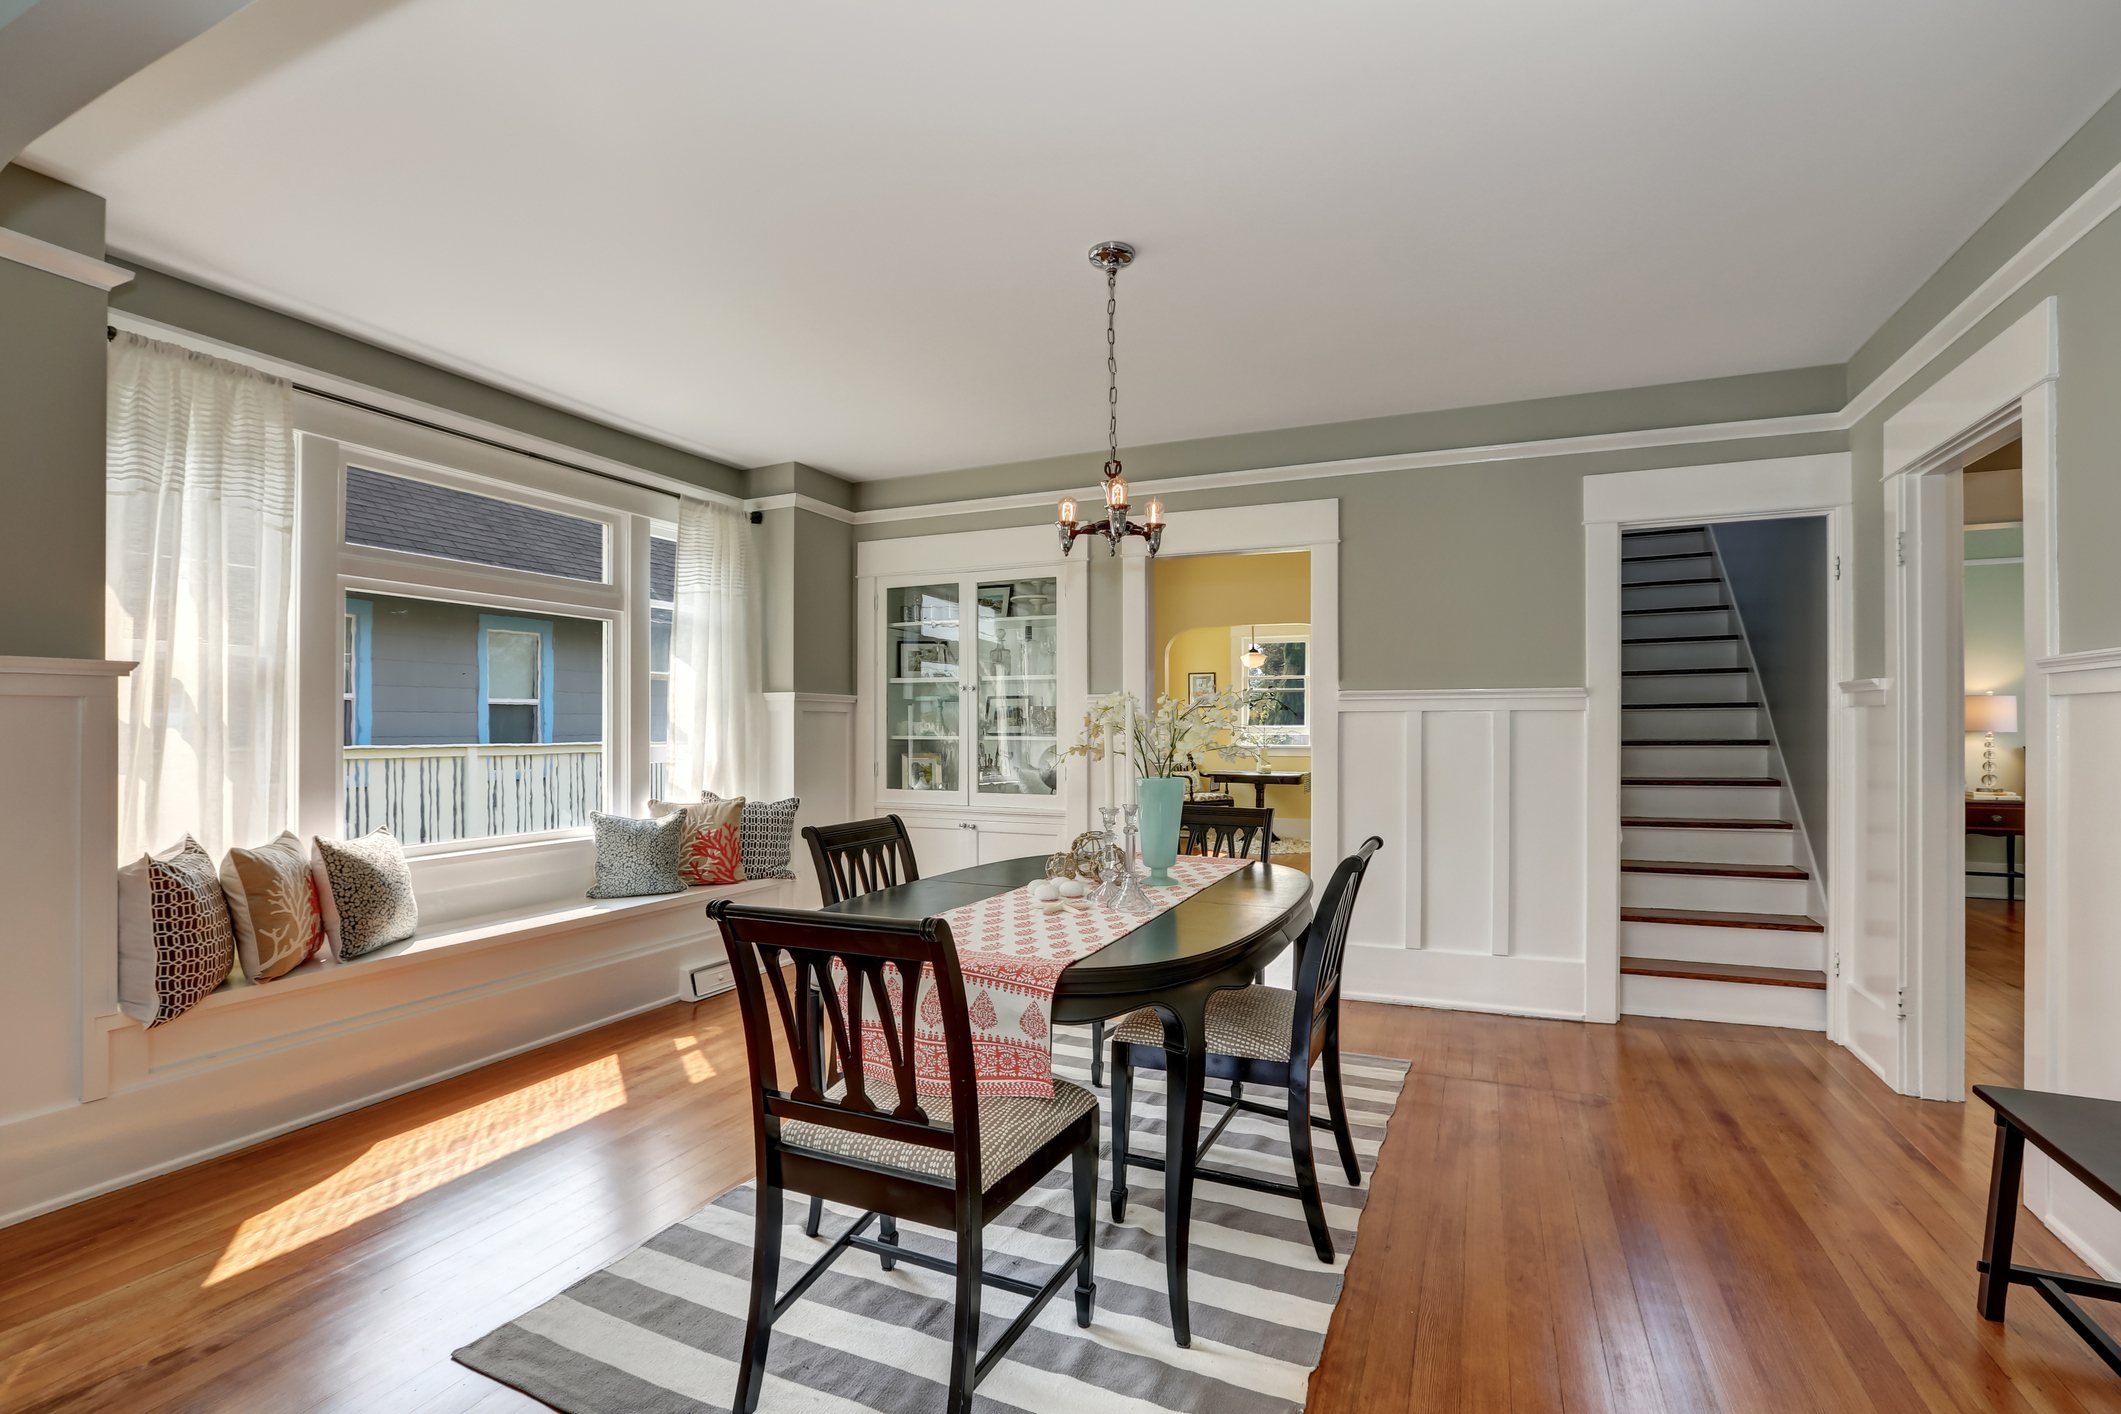 View of a classic dining room with gray walls and medium tone hardwood floors. Glass door cabinet and cozy window seat with pillows